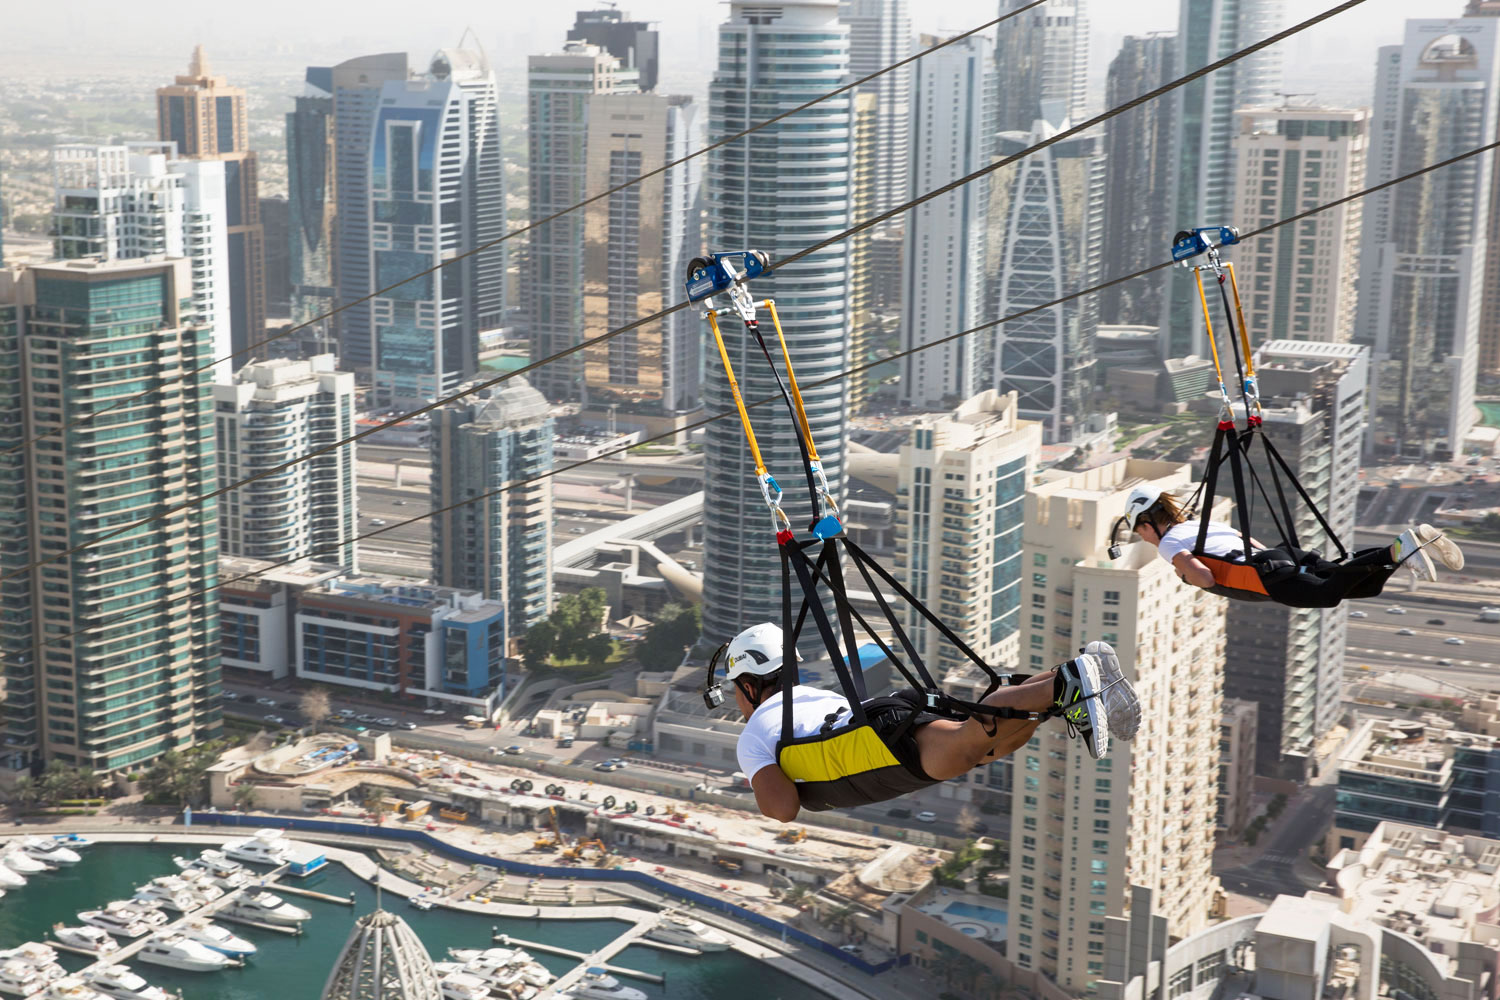 Ride The World S Longest Urban Zipline For Less Things To Do Time Out Dubai